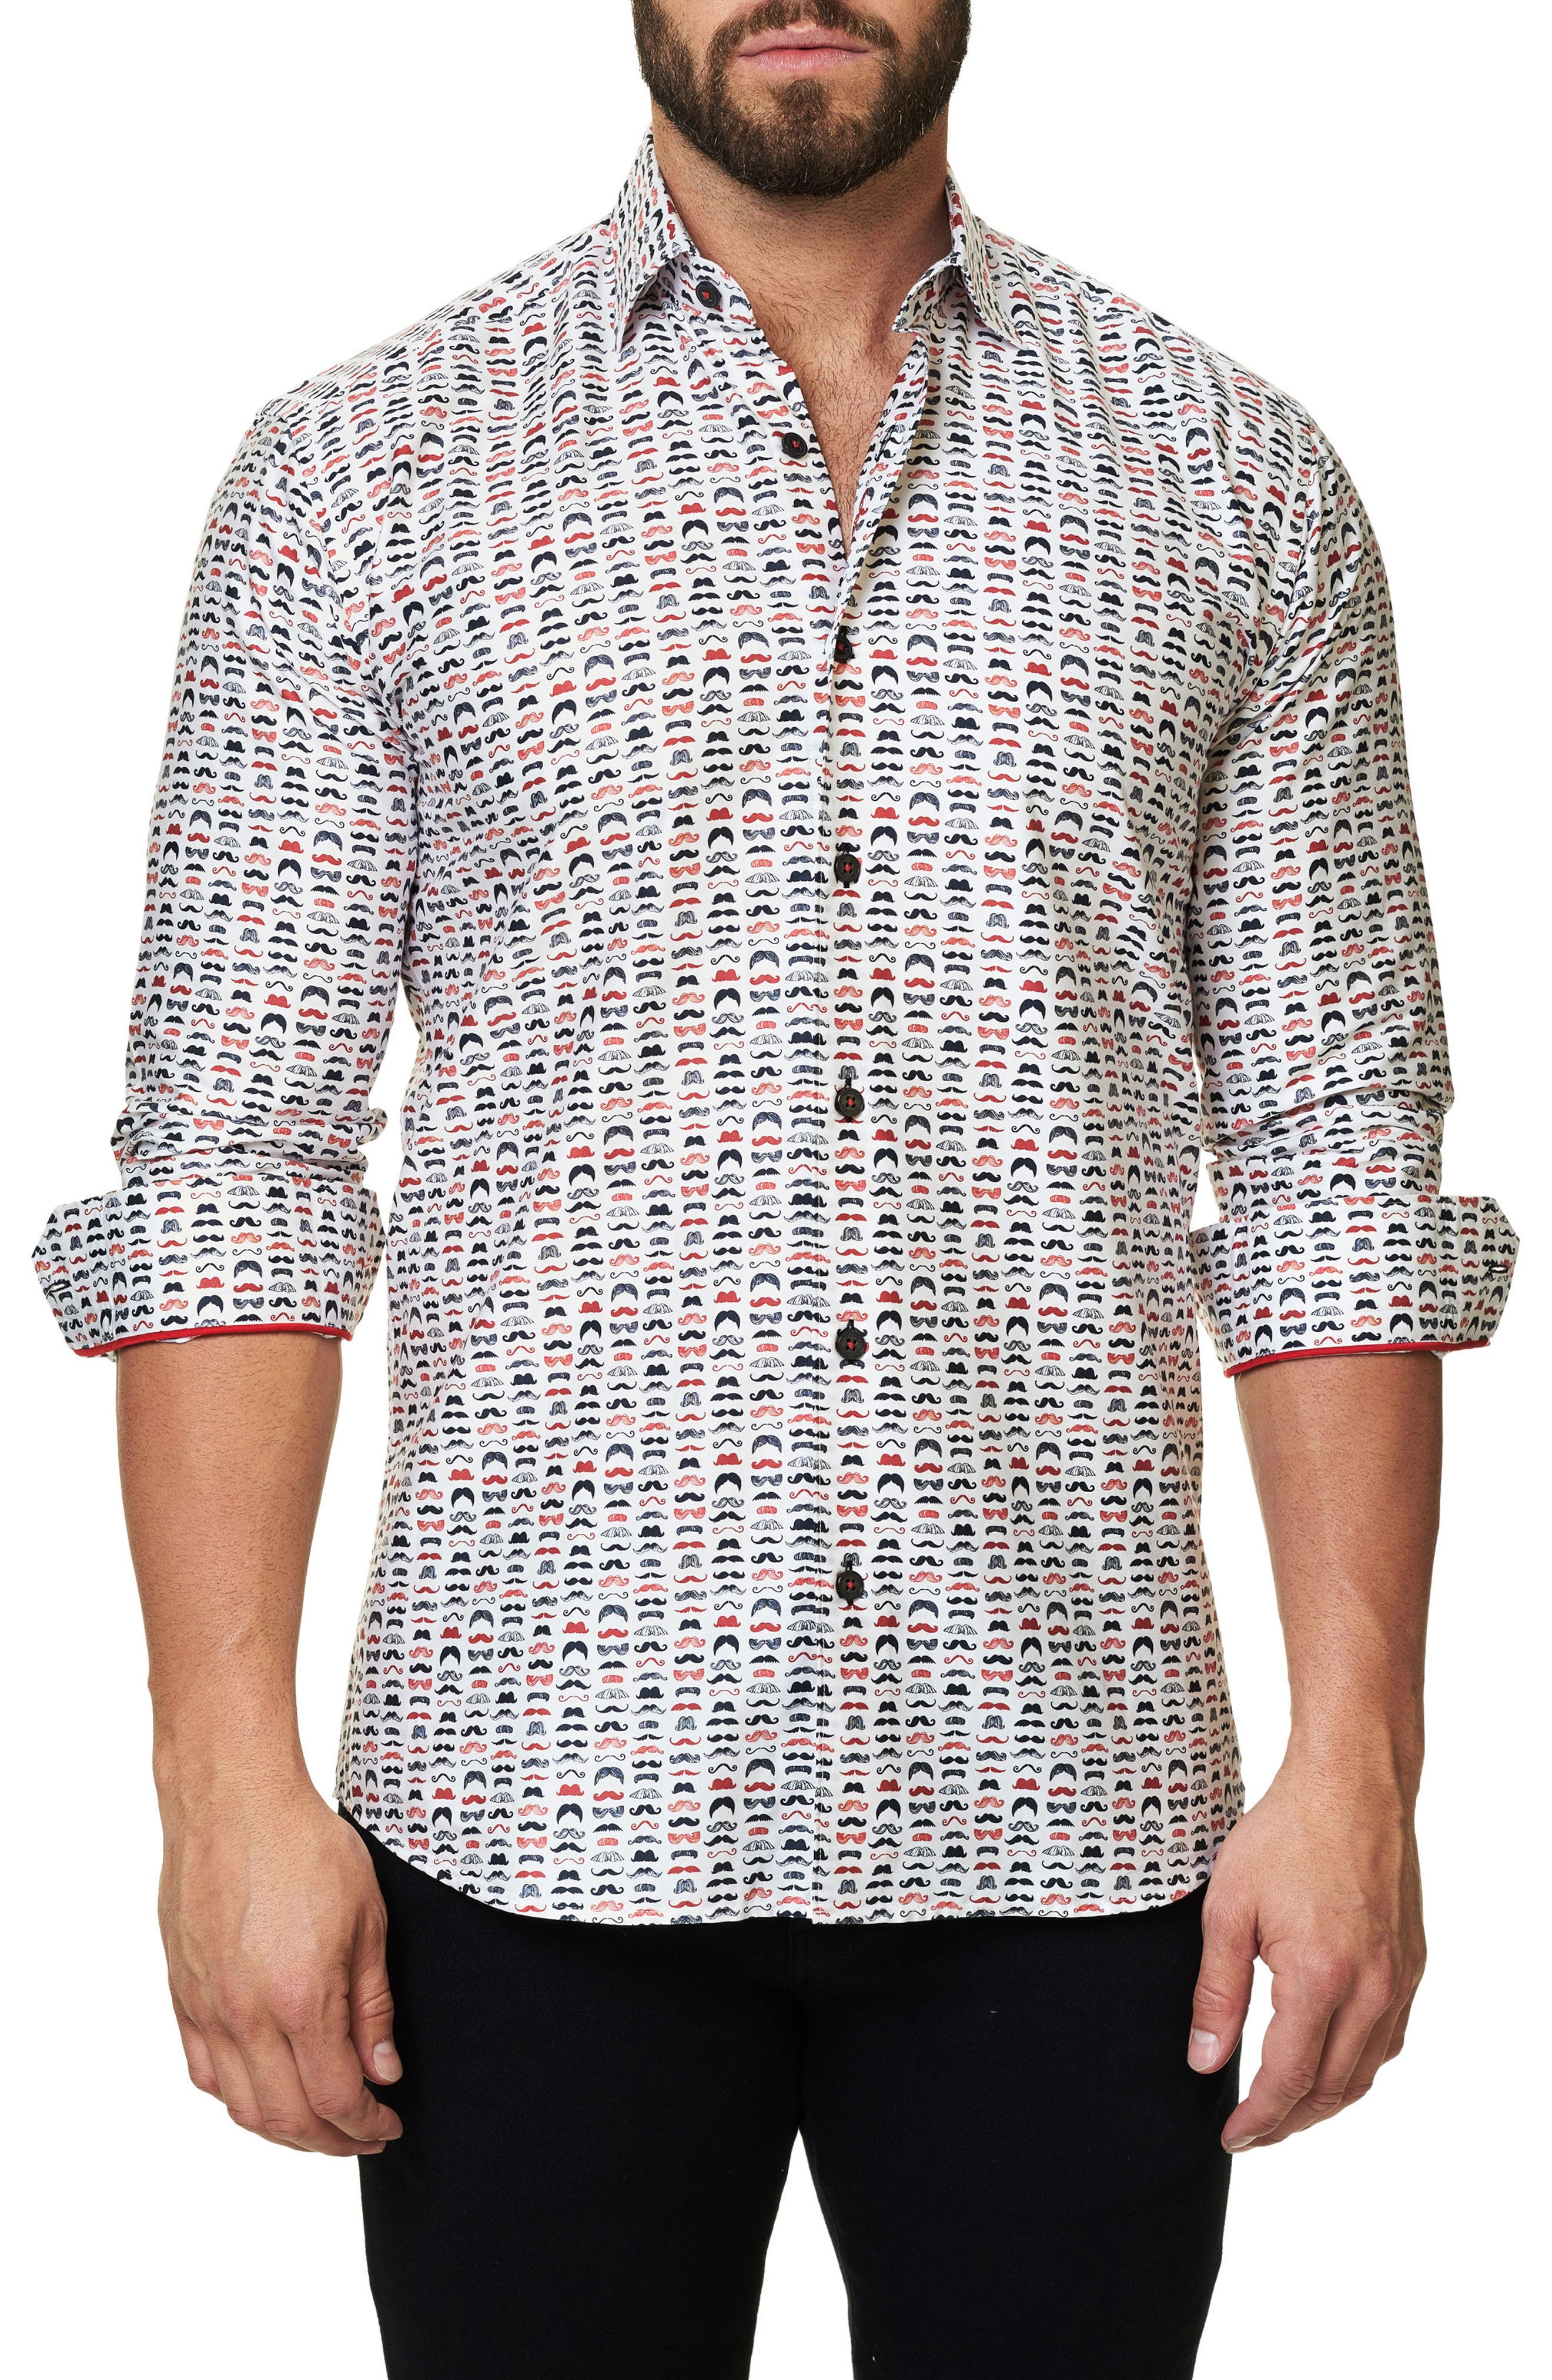 Maceoo Luxor Funky Mustache Trim Fit Sport Shirt